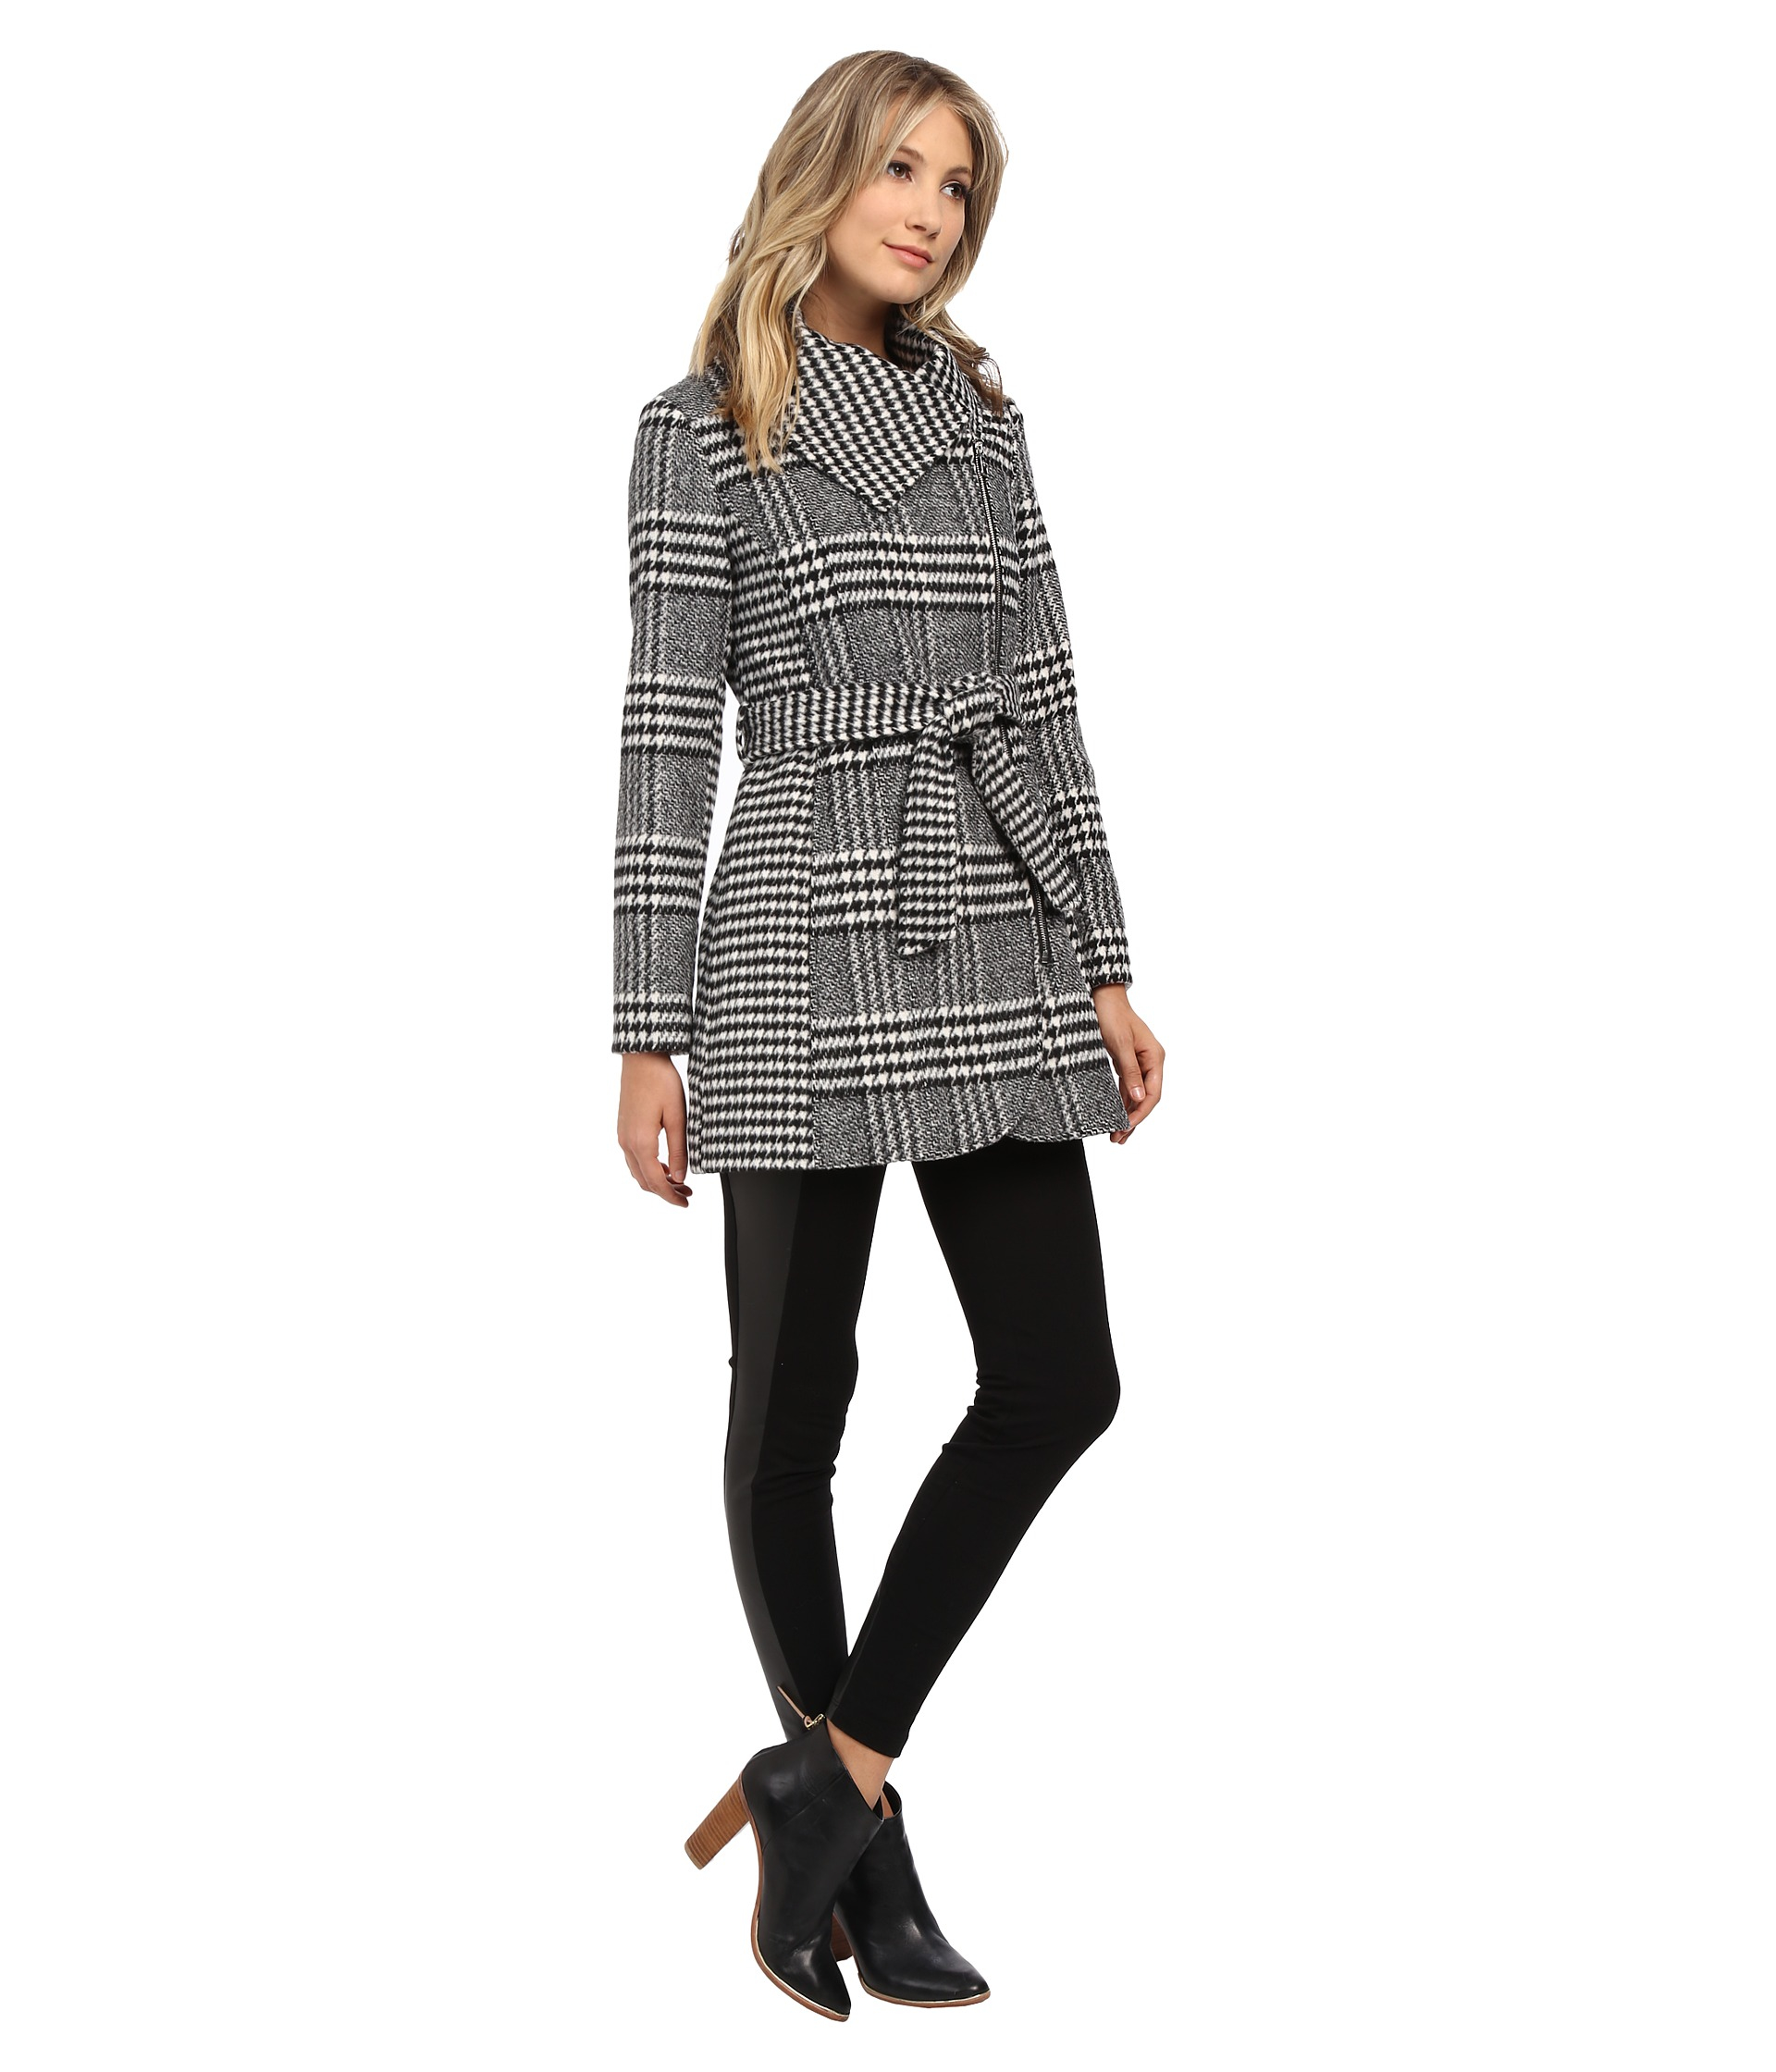 Jessica Simpson Glen Plaid Houndstooth Coat With Belt In